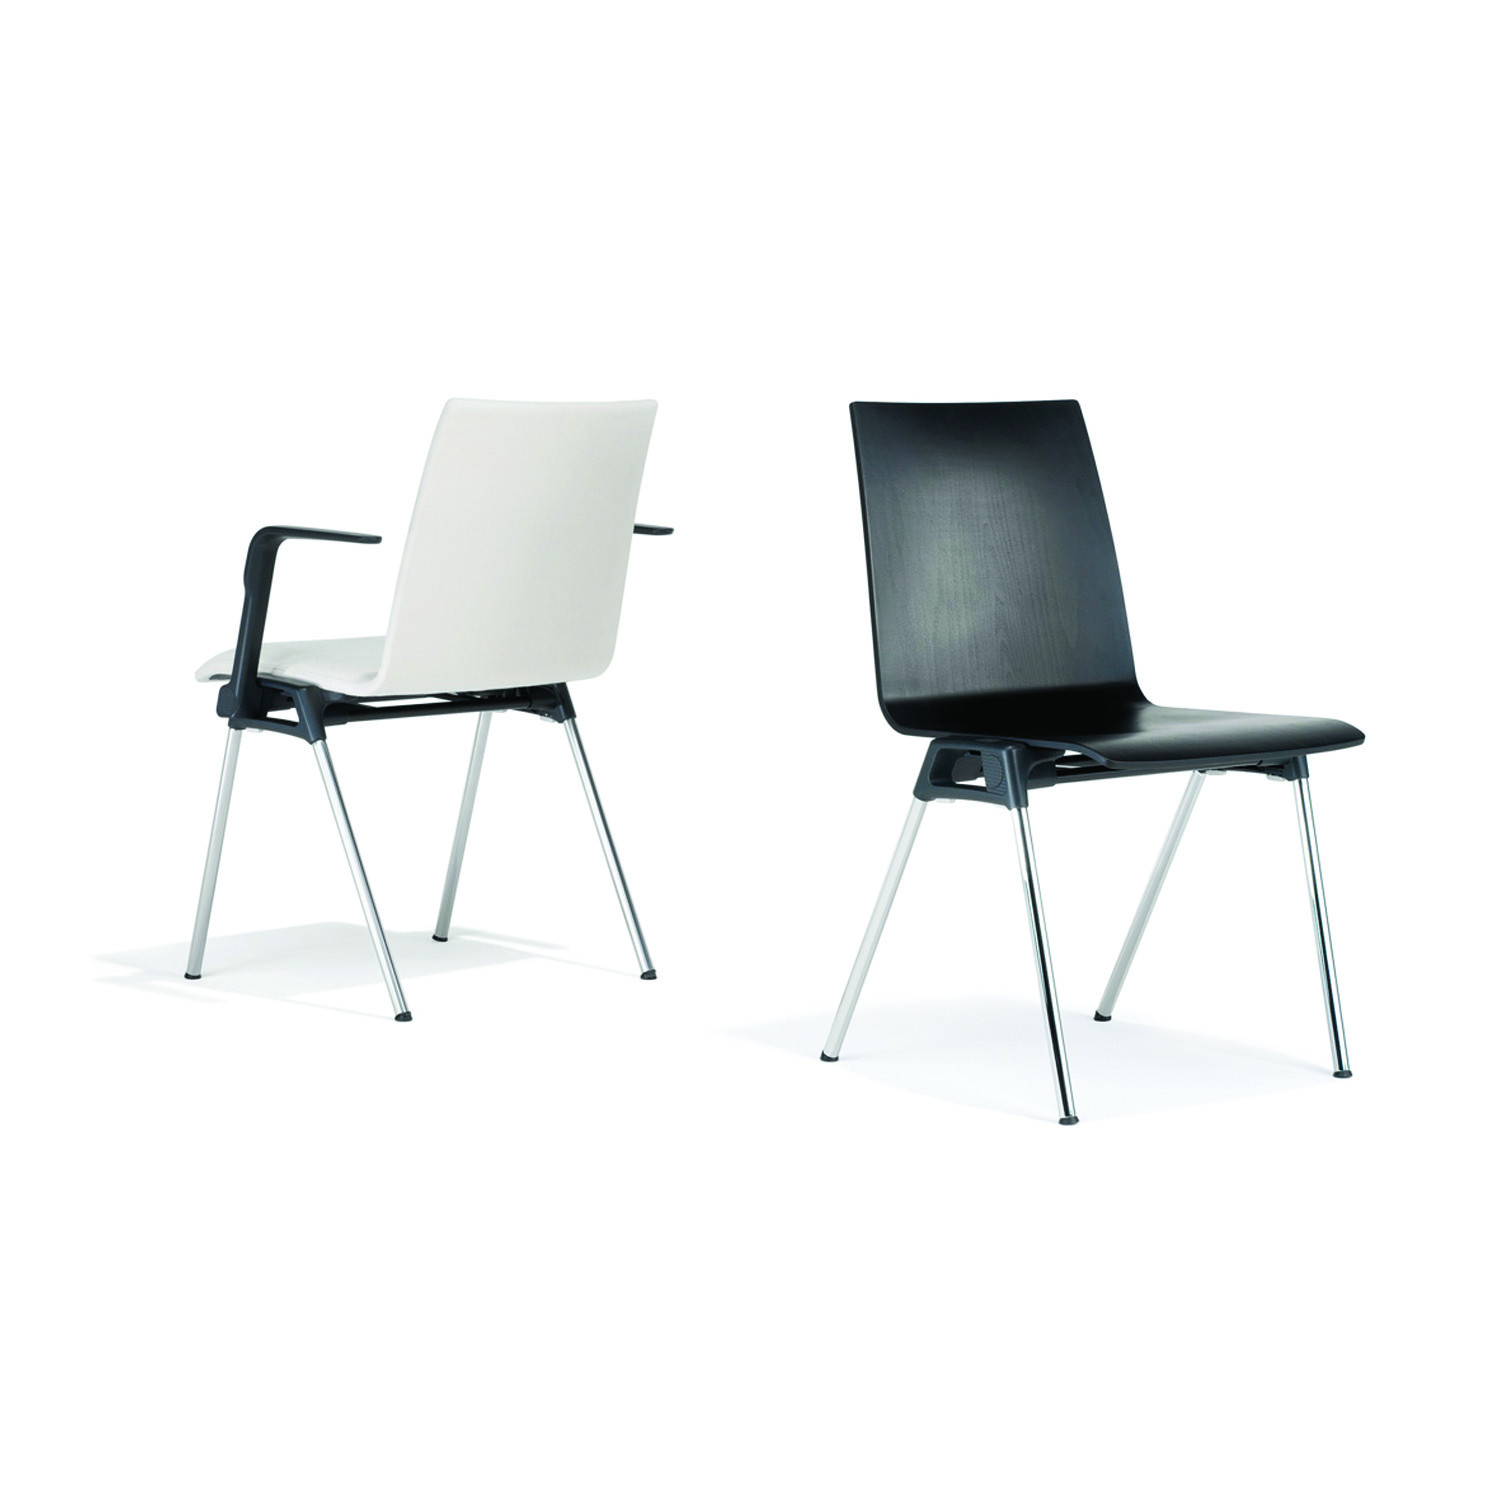 3800 Multipurpose 4-legged Chairs